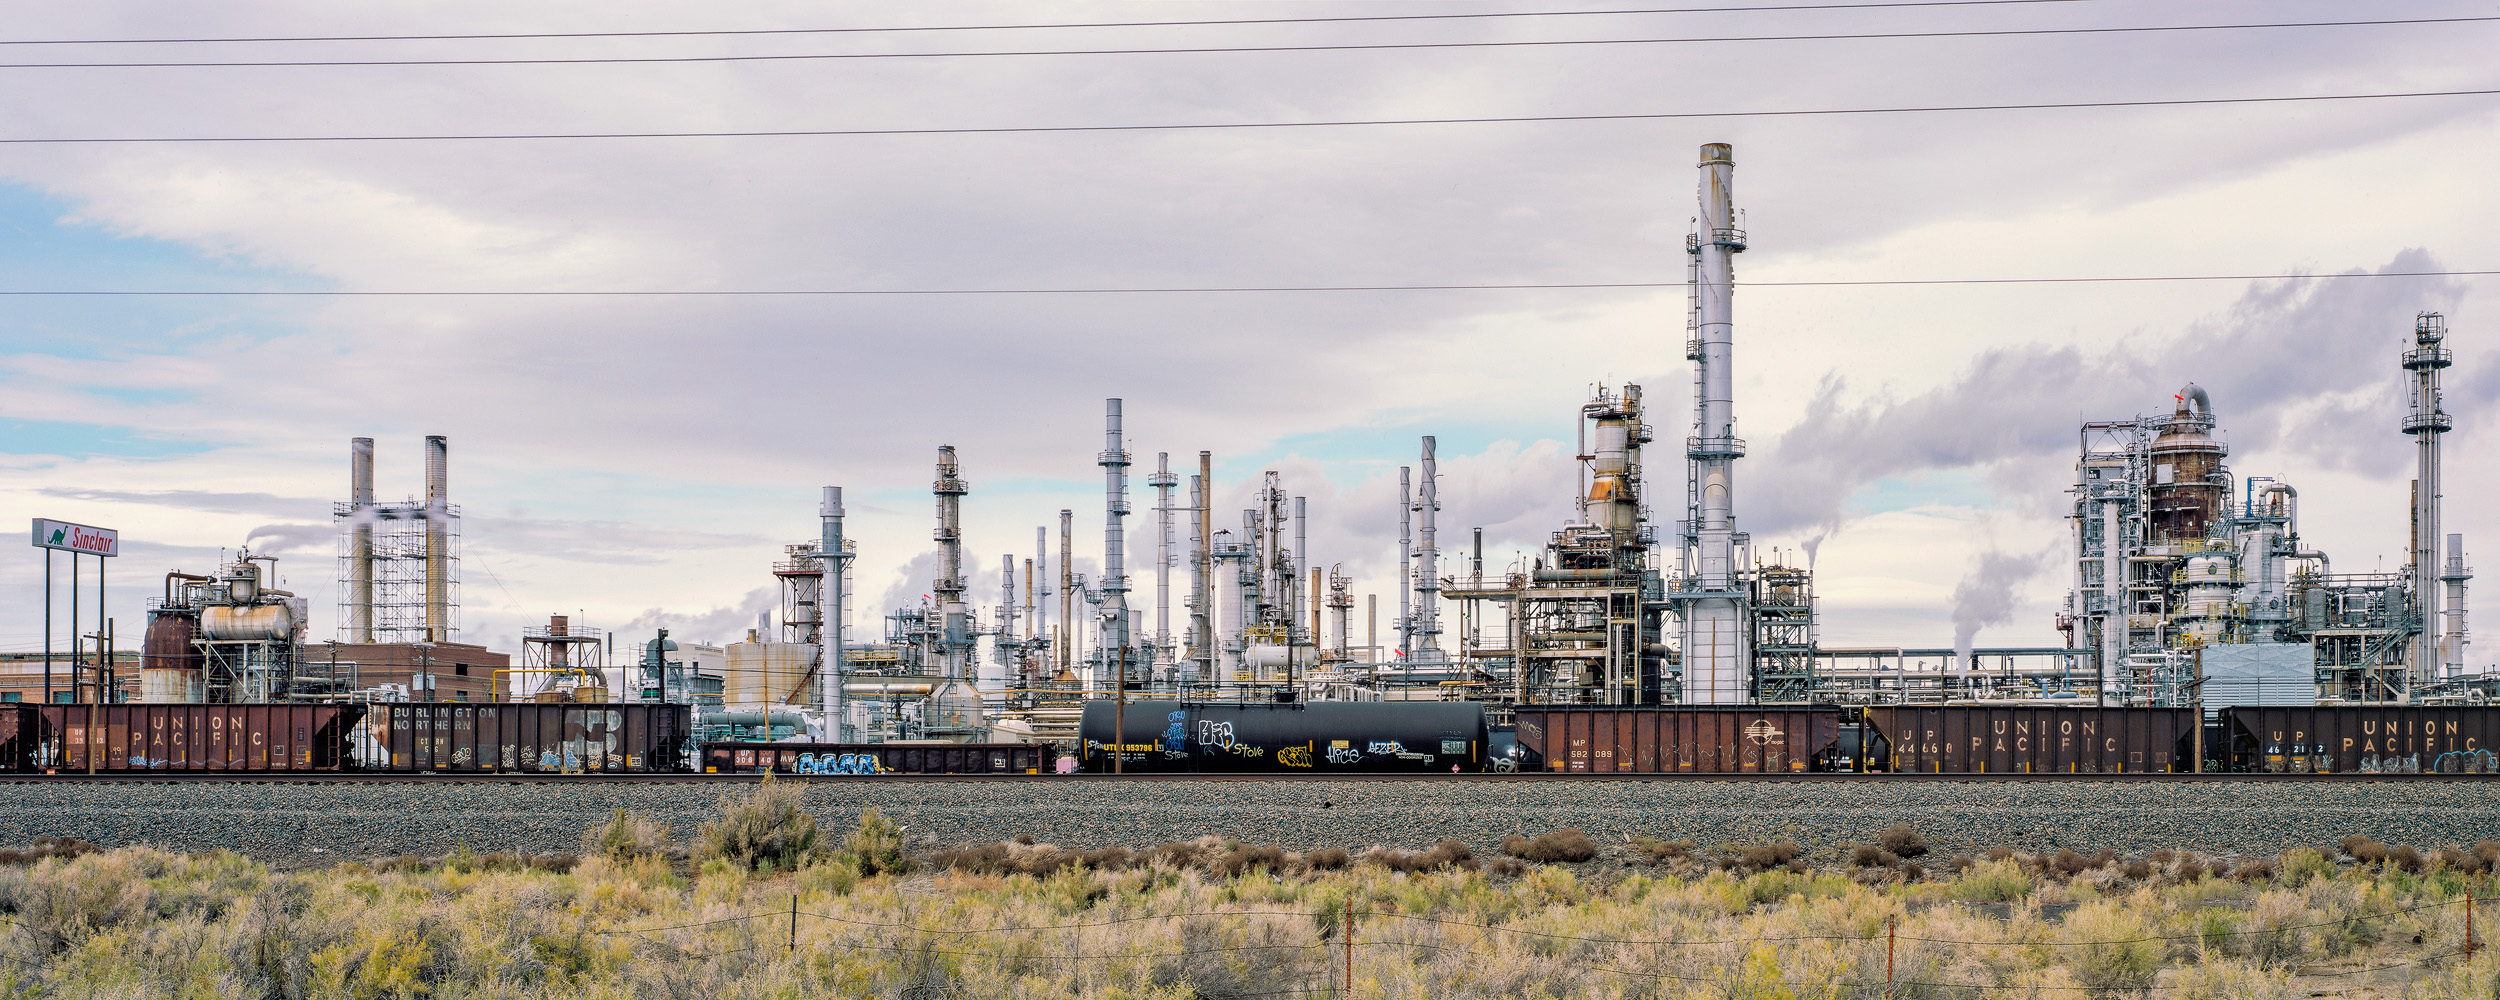 Refinery, Sinclair, Wyoming